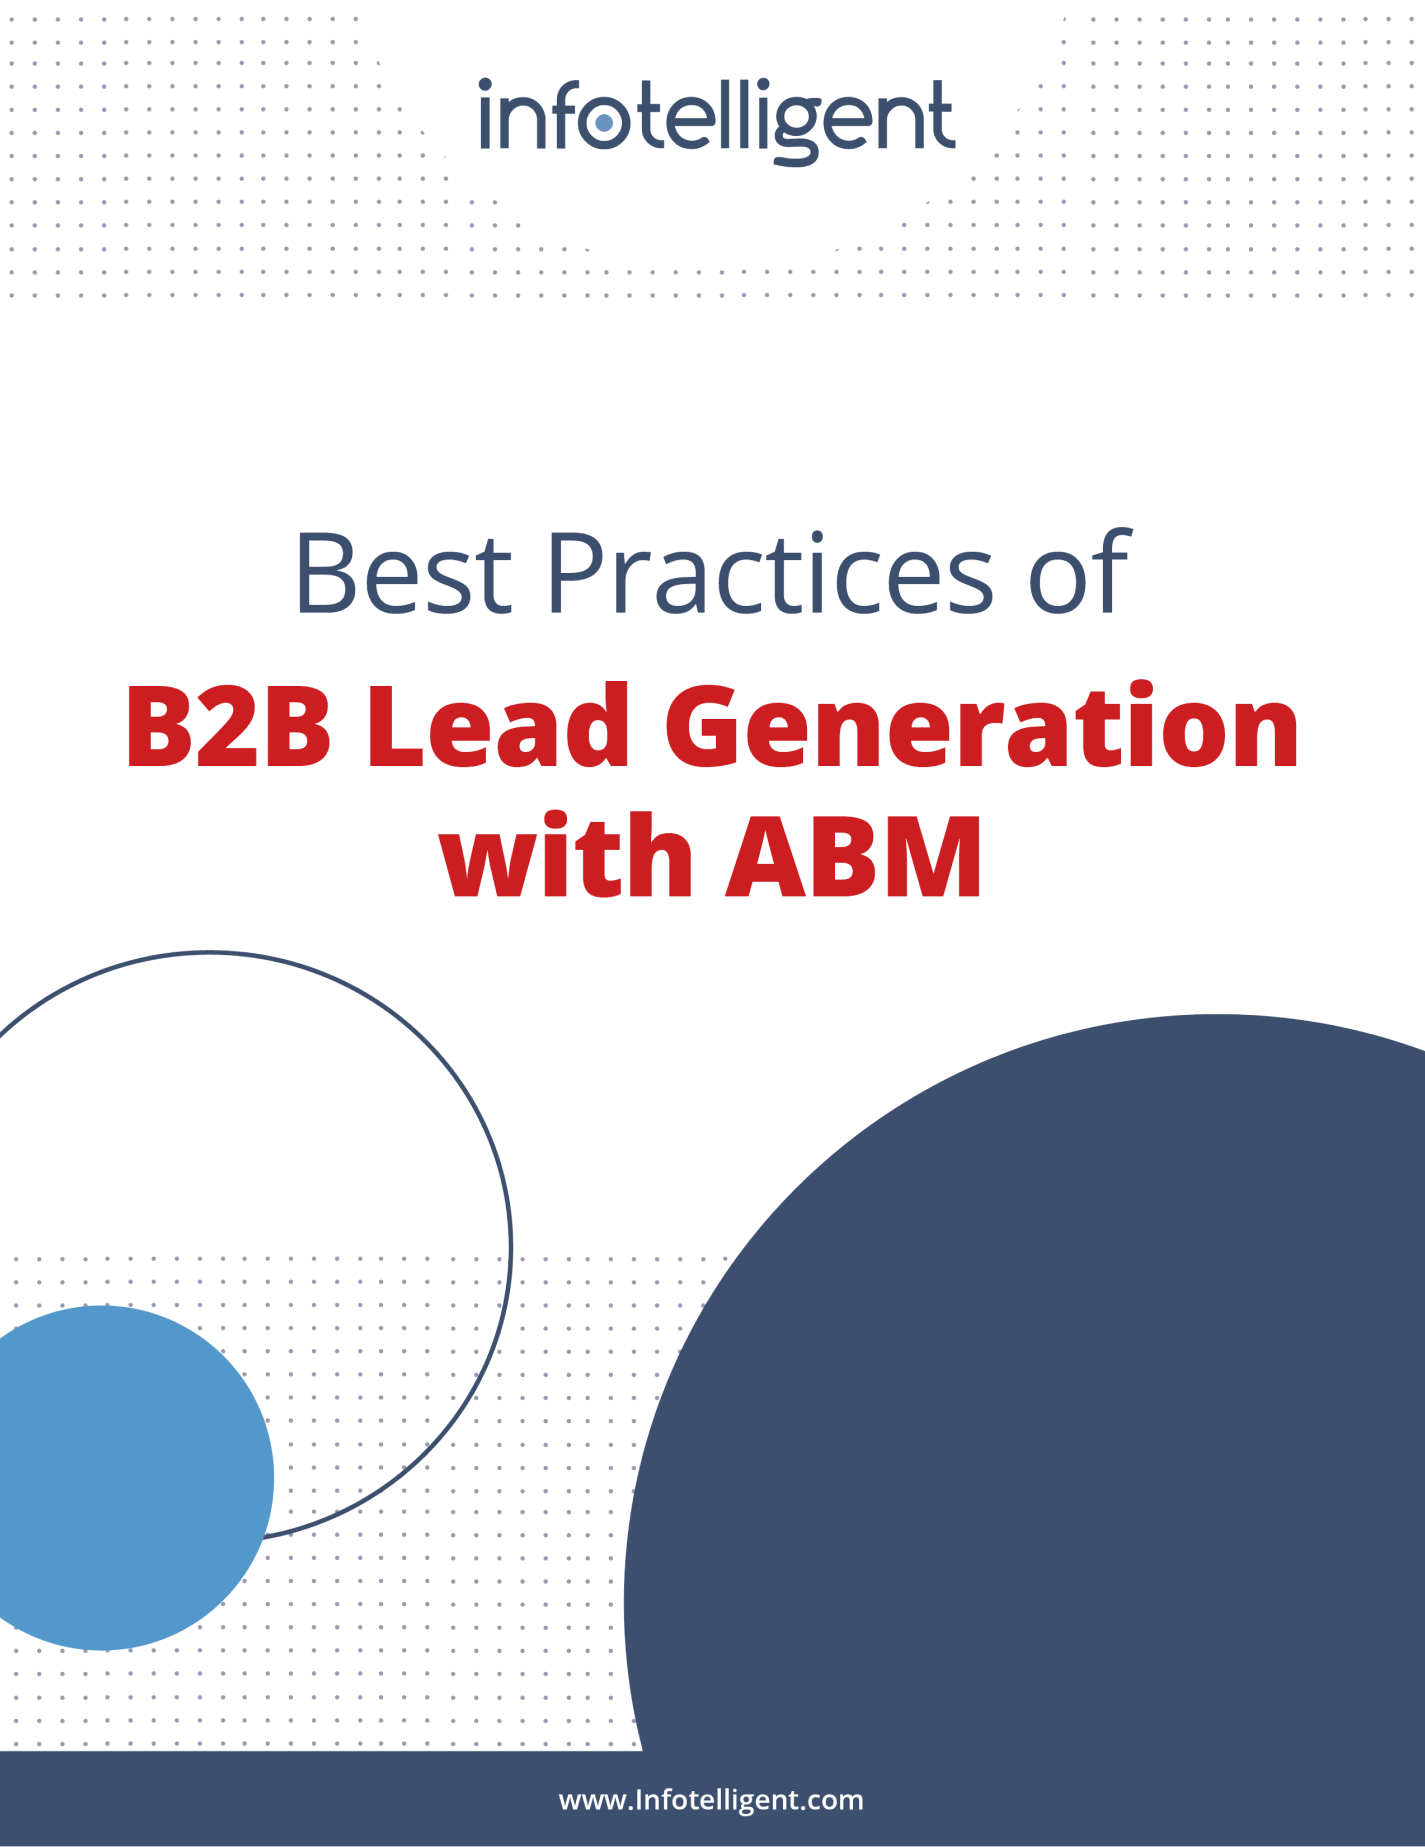 Best Practices of B2B Lead Generation with ABM